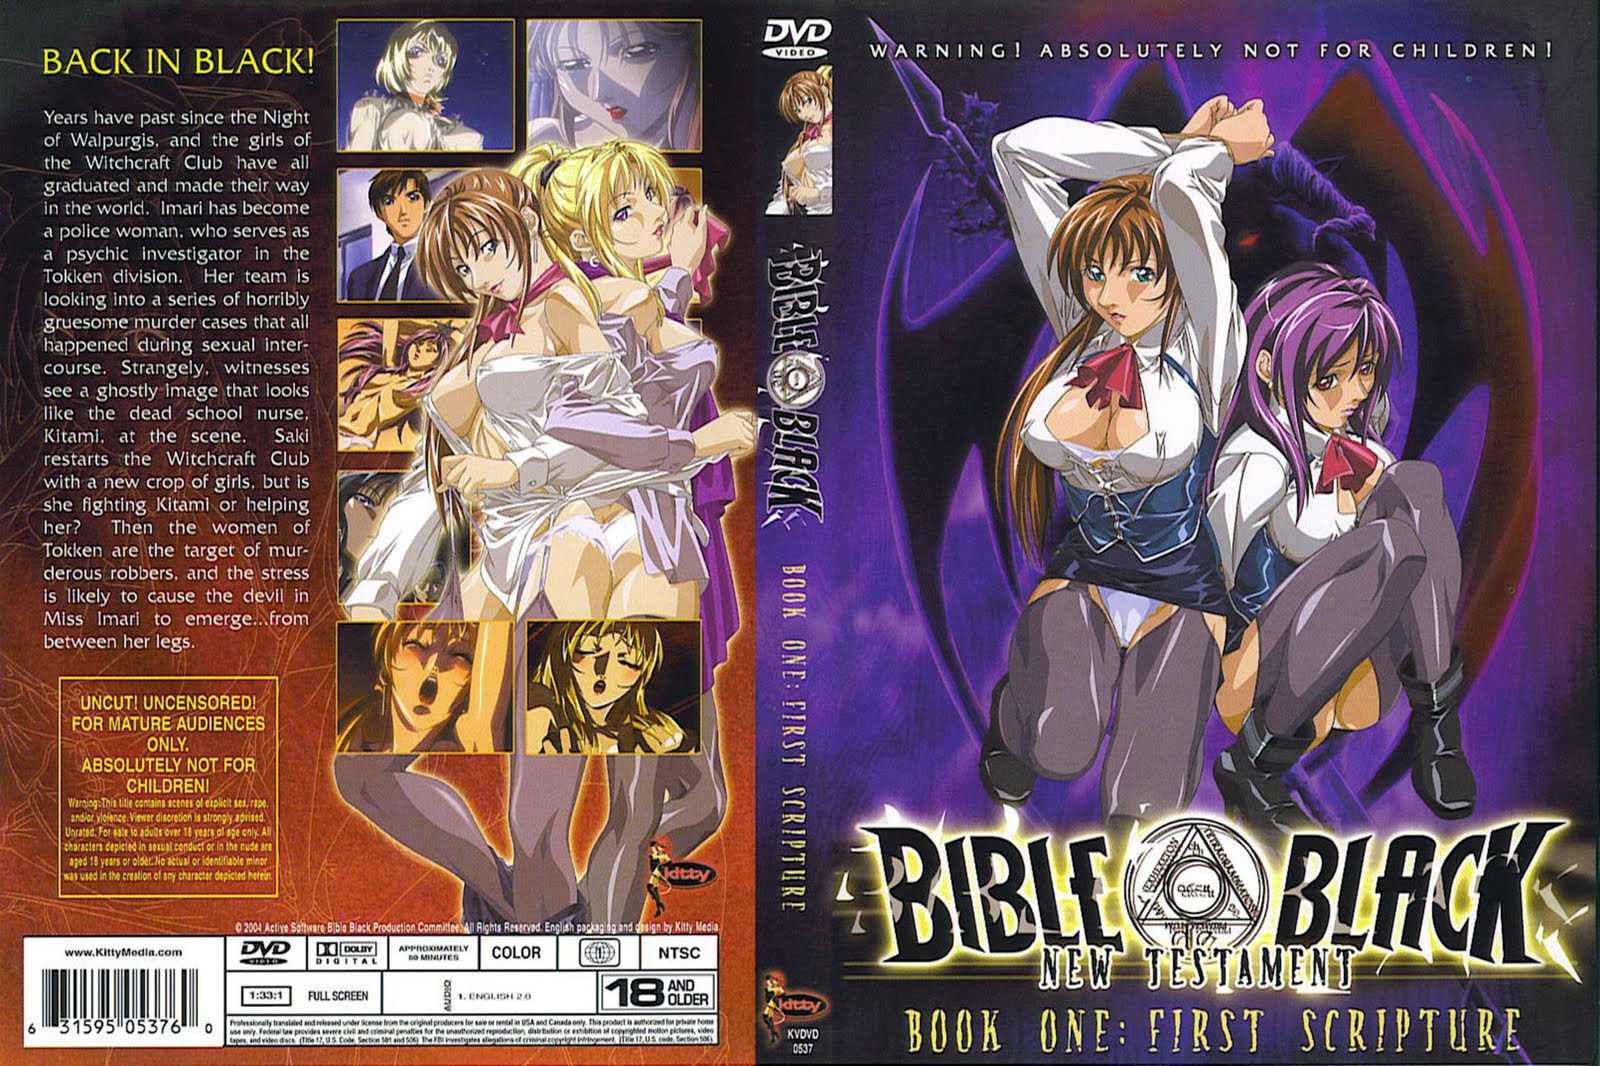 ... Subs Uncen porn movies Bible Black New testament ep 5.zip from public ...